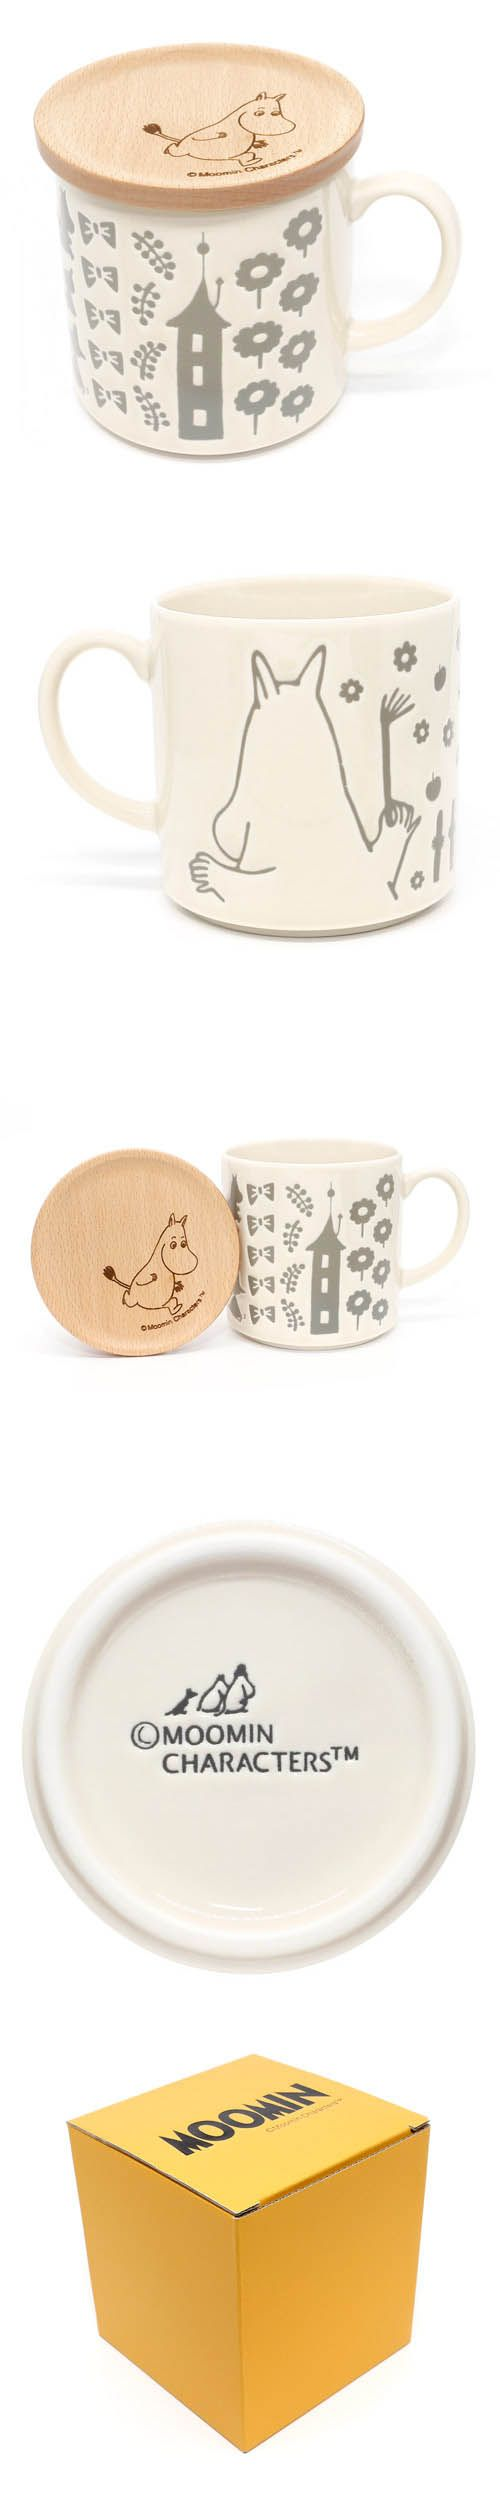 Muumi Moomin Valley white ceramic mug wooden lid box set by YamaKa KawaMono.com